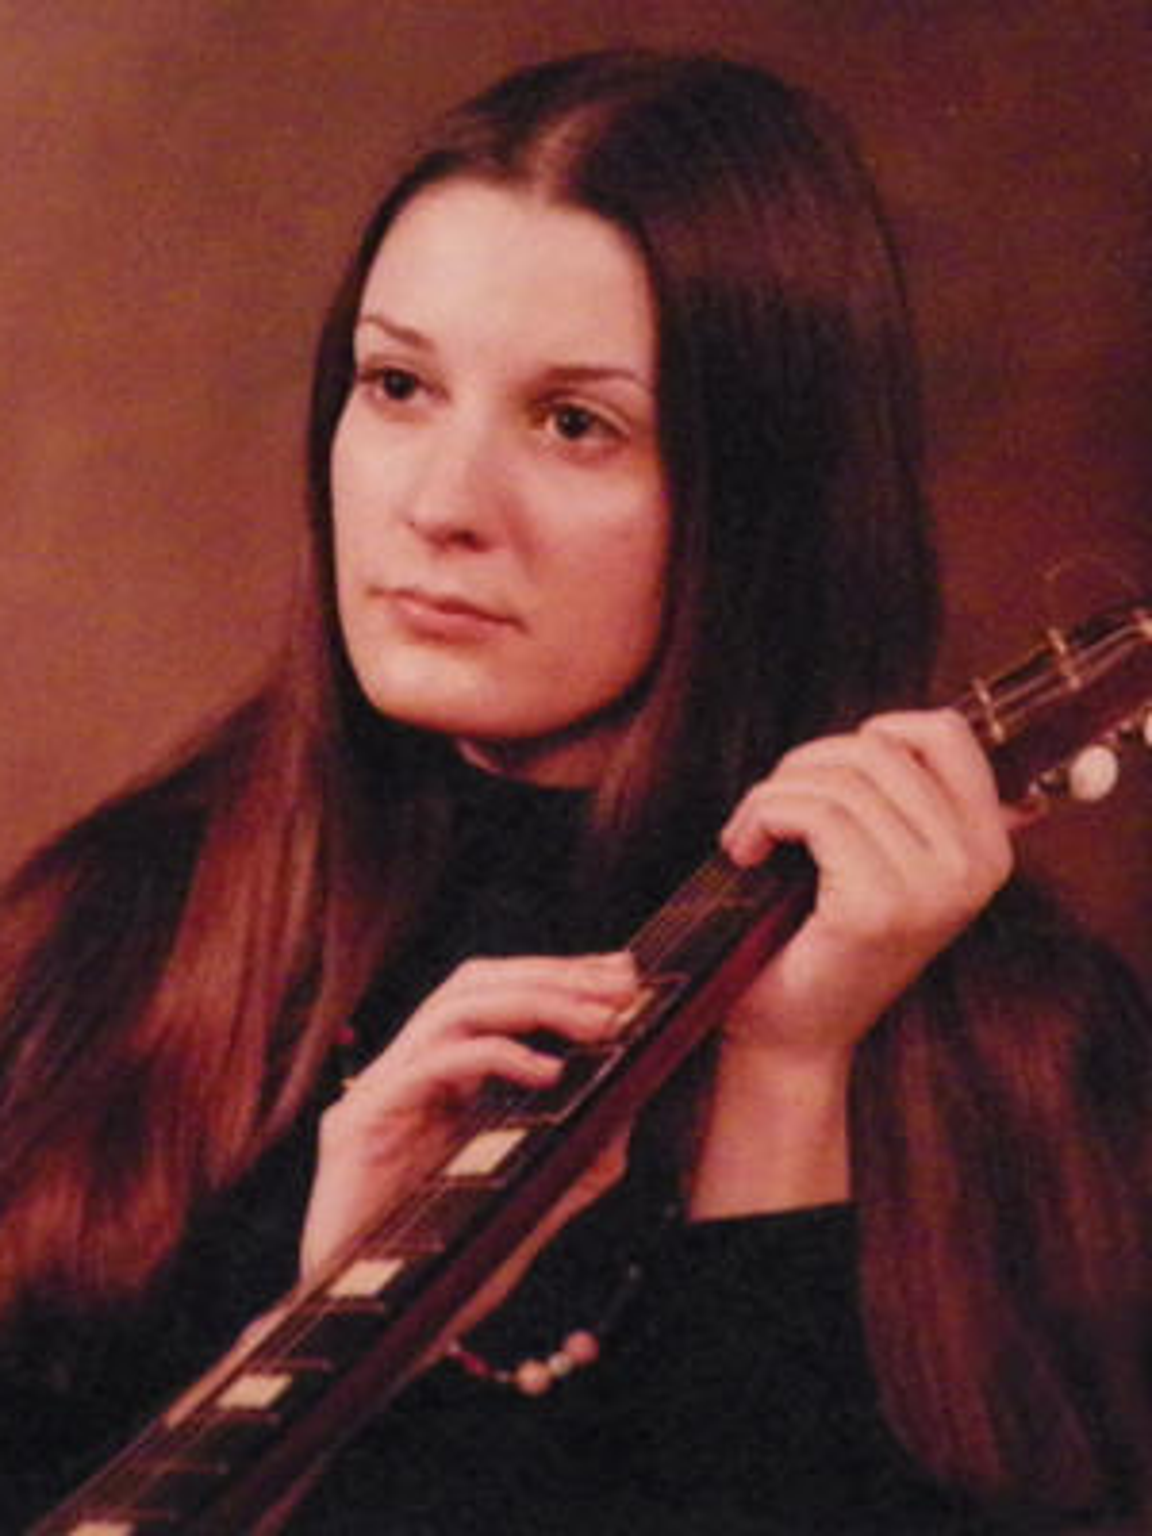 A circa 1966 photograph of Sharon Hensley